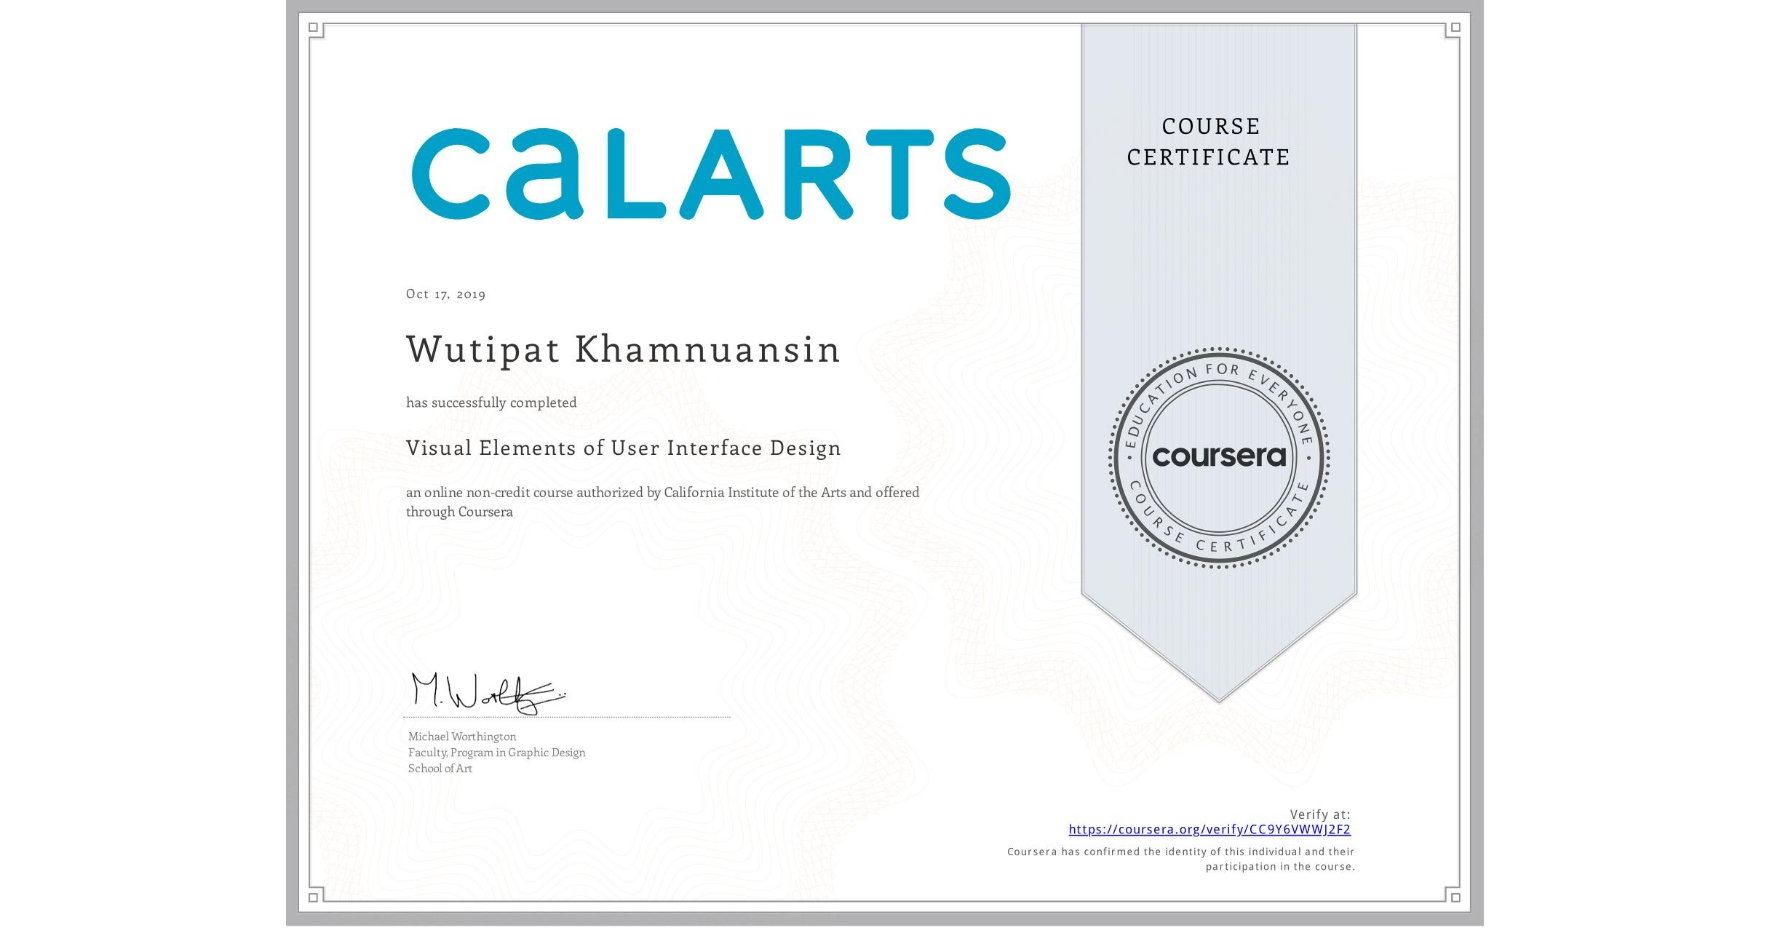 View certificate for Wutipat Khamnuansin, Visual Elements of User Interface Design, an online non-credit course authorized by California Institute of the Arts and offered through Coursera